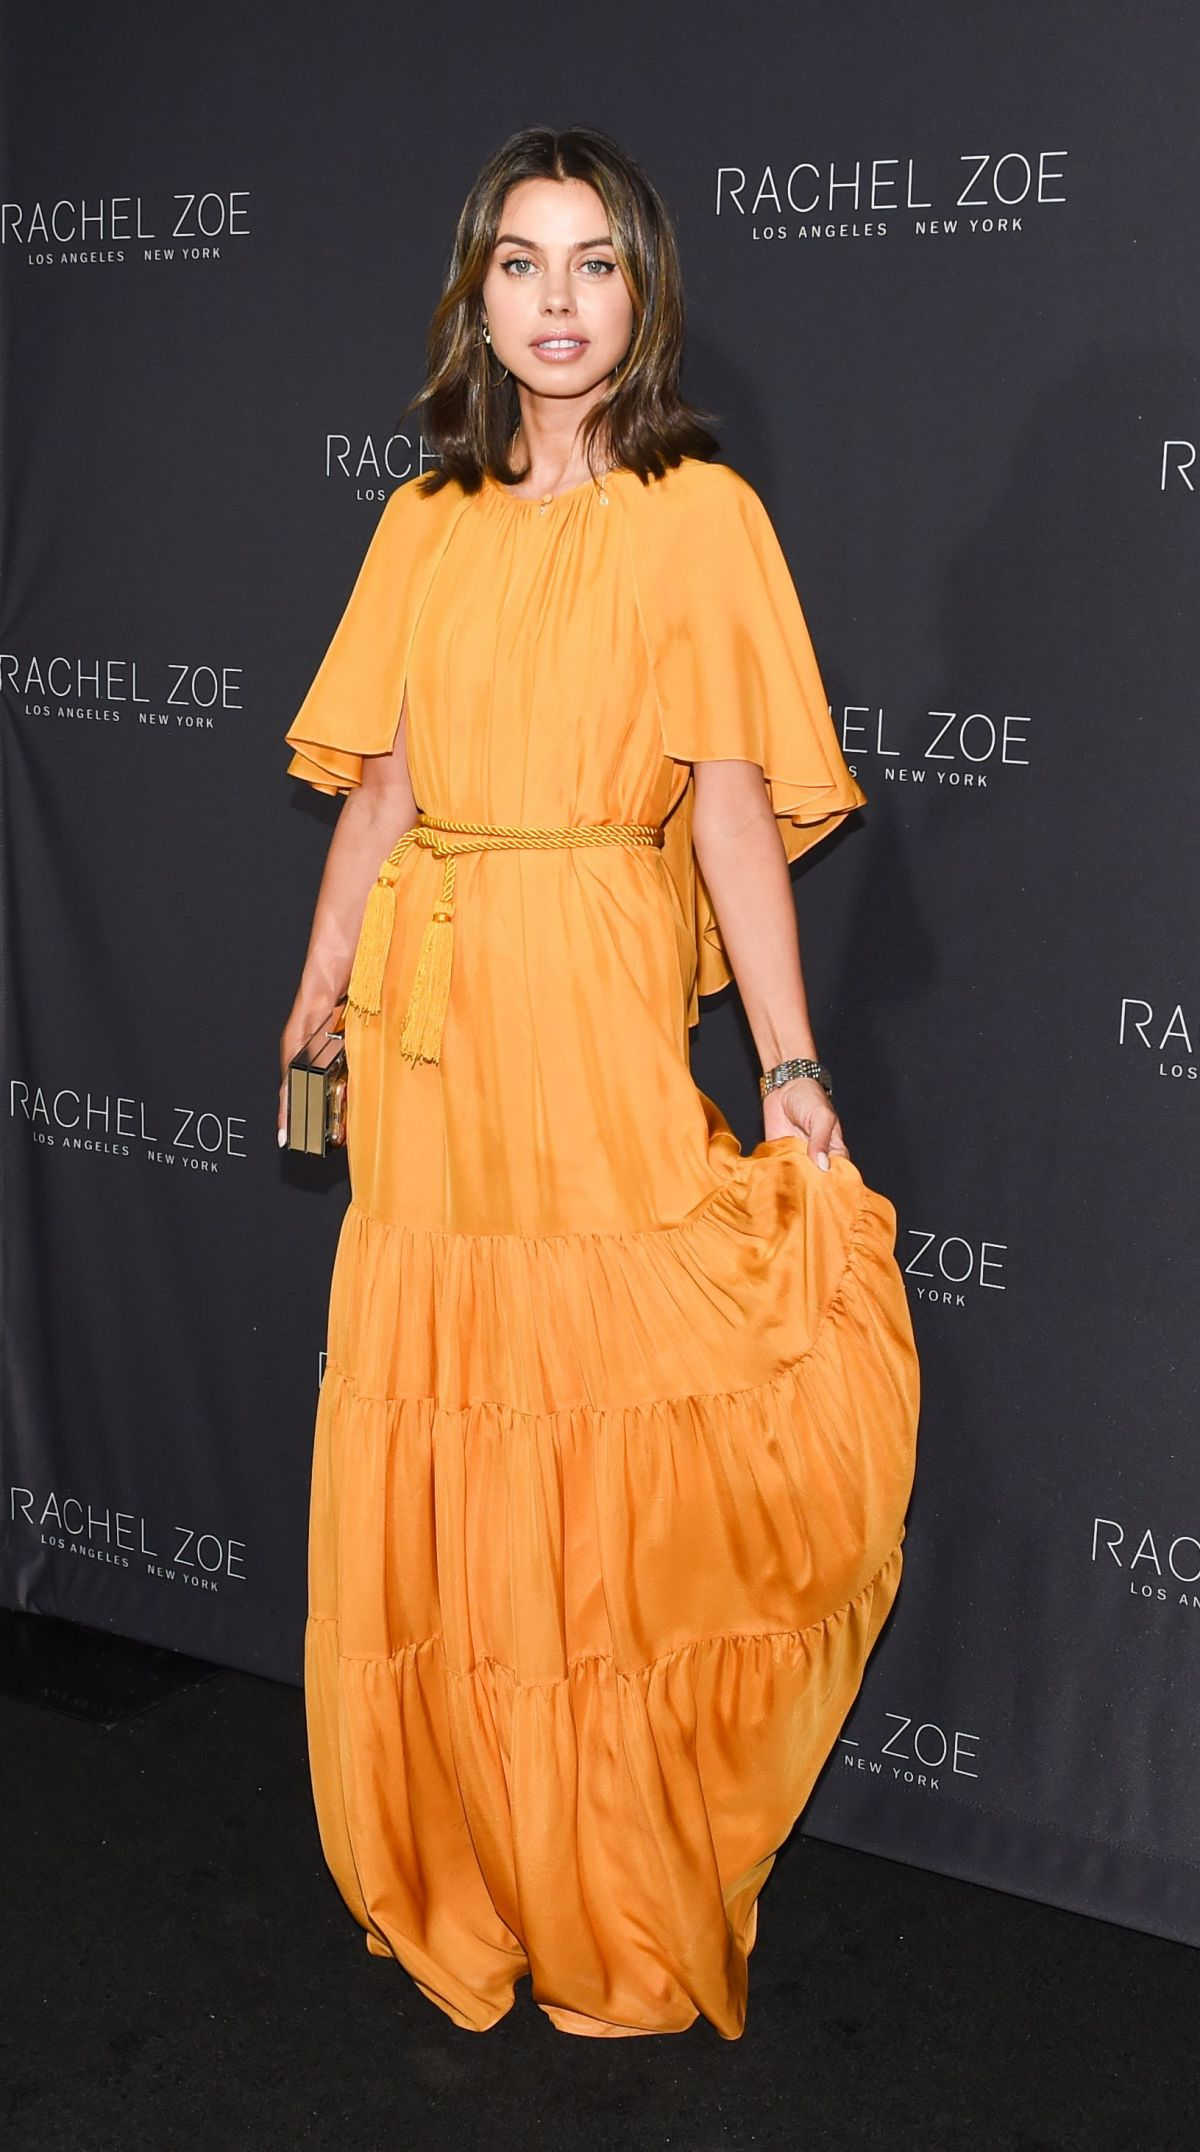 ANNABELLE FLEUR at Rachel Zoe: See Now, Buy Now Fashion Show in Los Angeles 02/06/2017